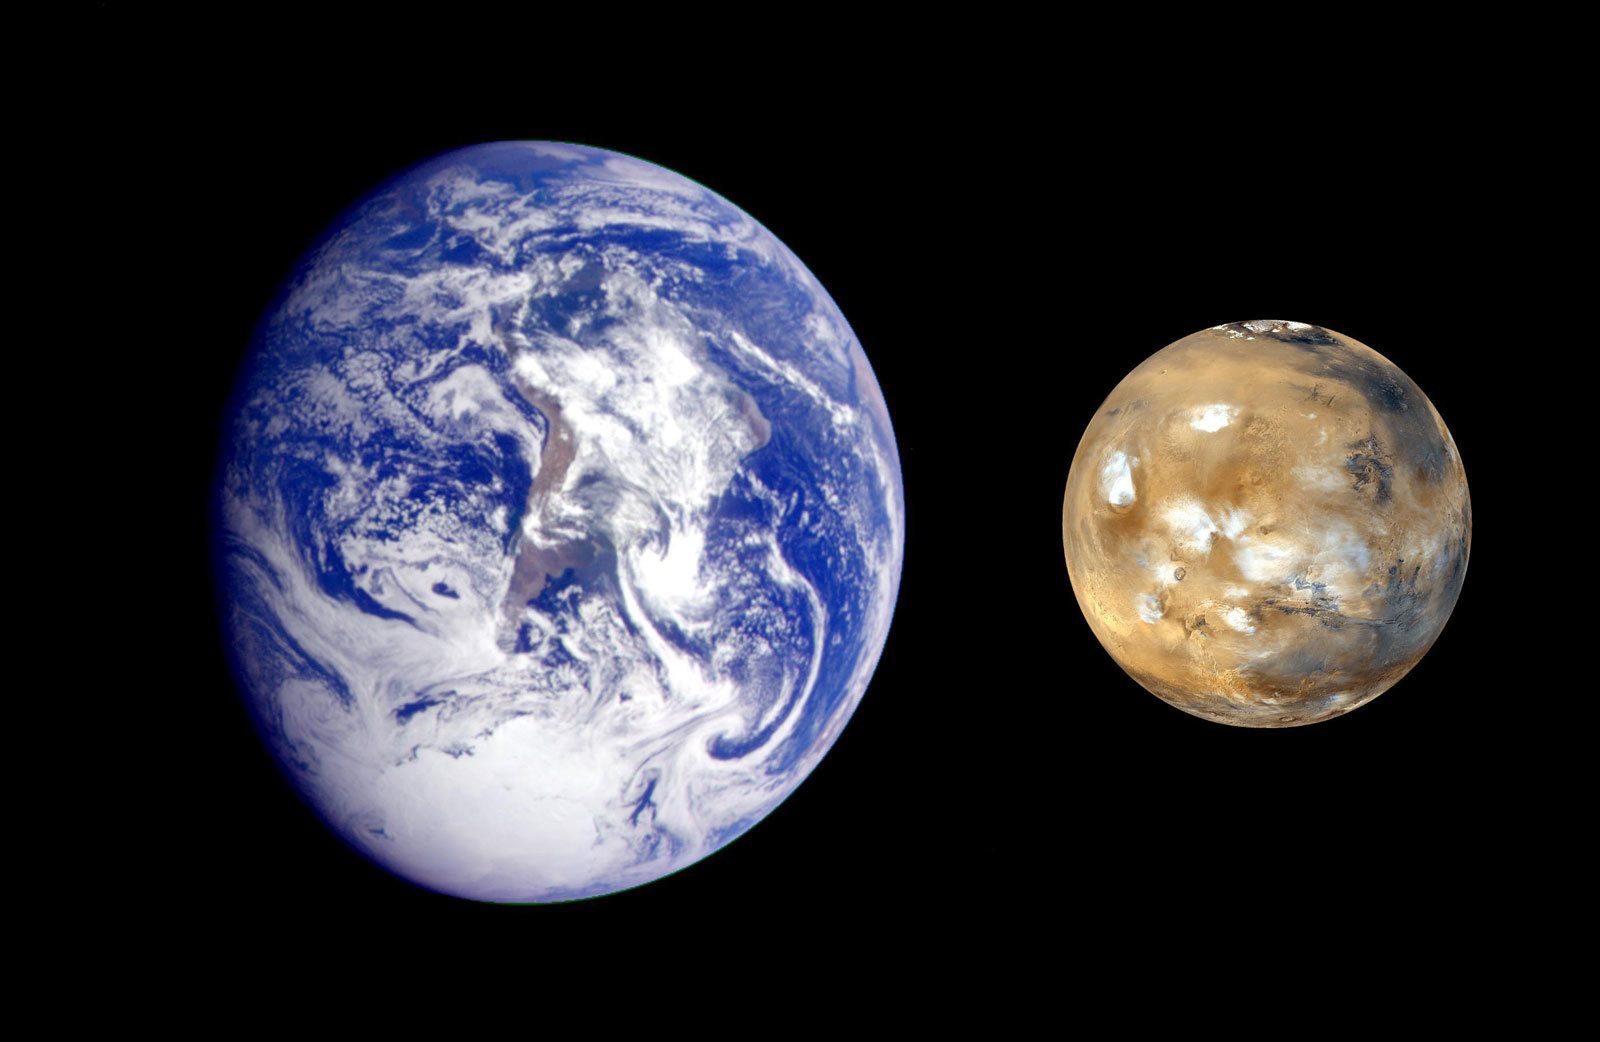 This composite image of Earth and Mars was created to allow viewers to gain a better understanding of the relative sizes of the two planets.